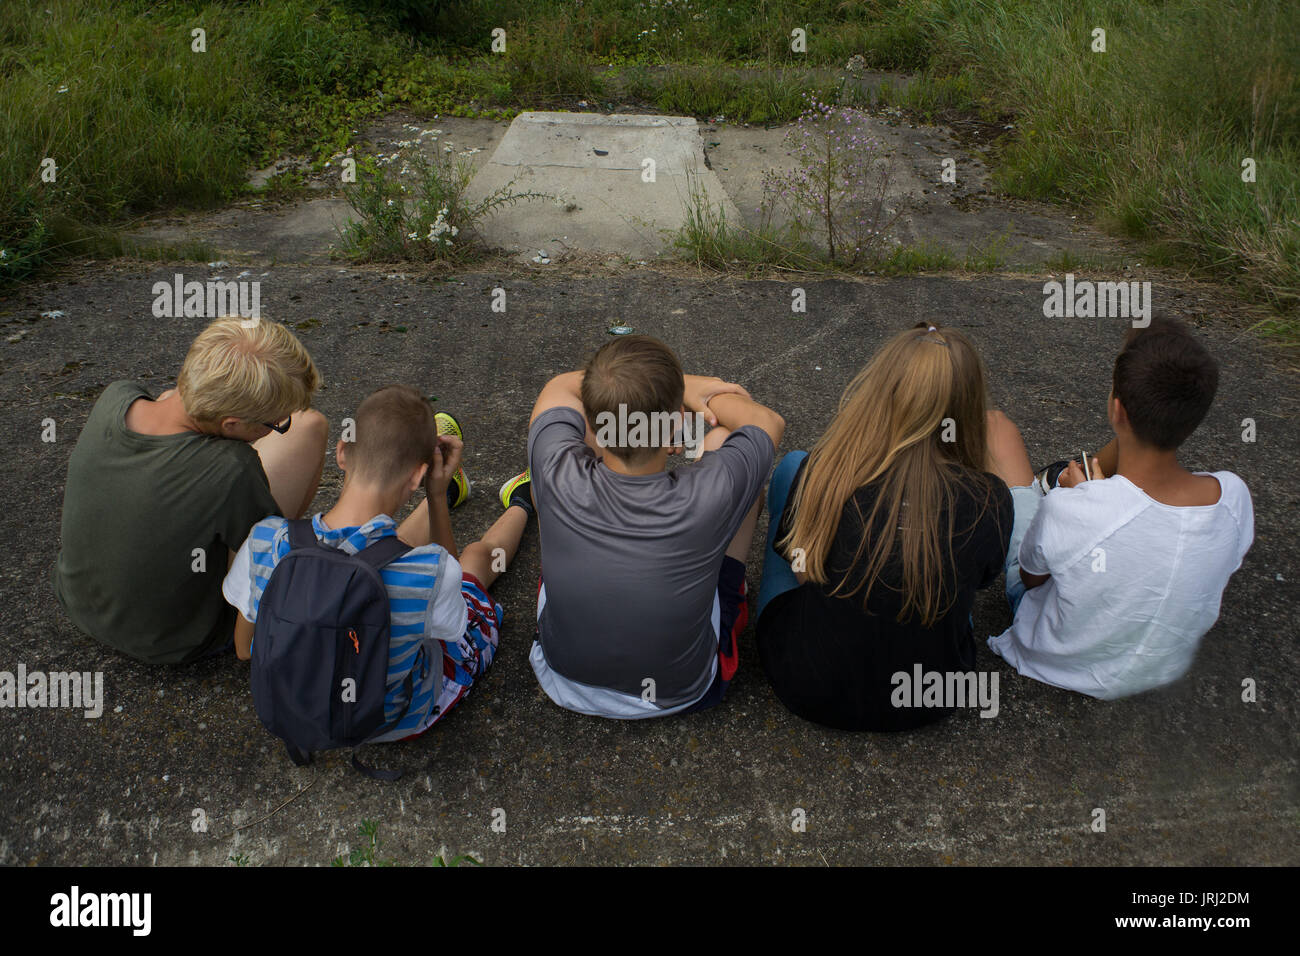 Best friends - group of teenagers  /  Group of sitting children with phones - Stock Image